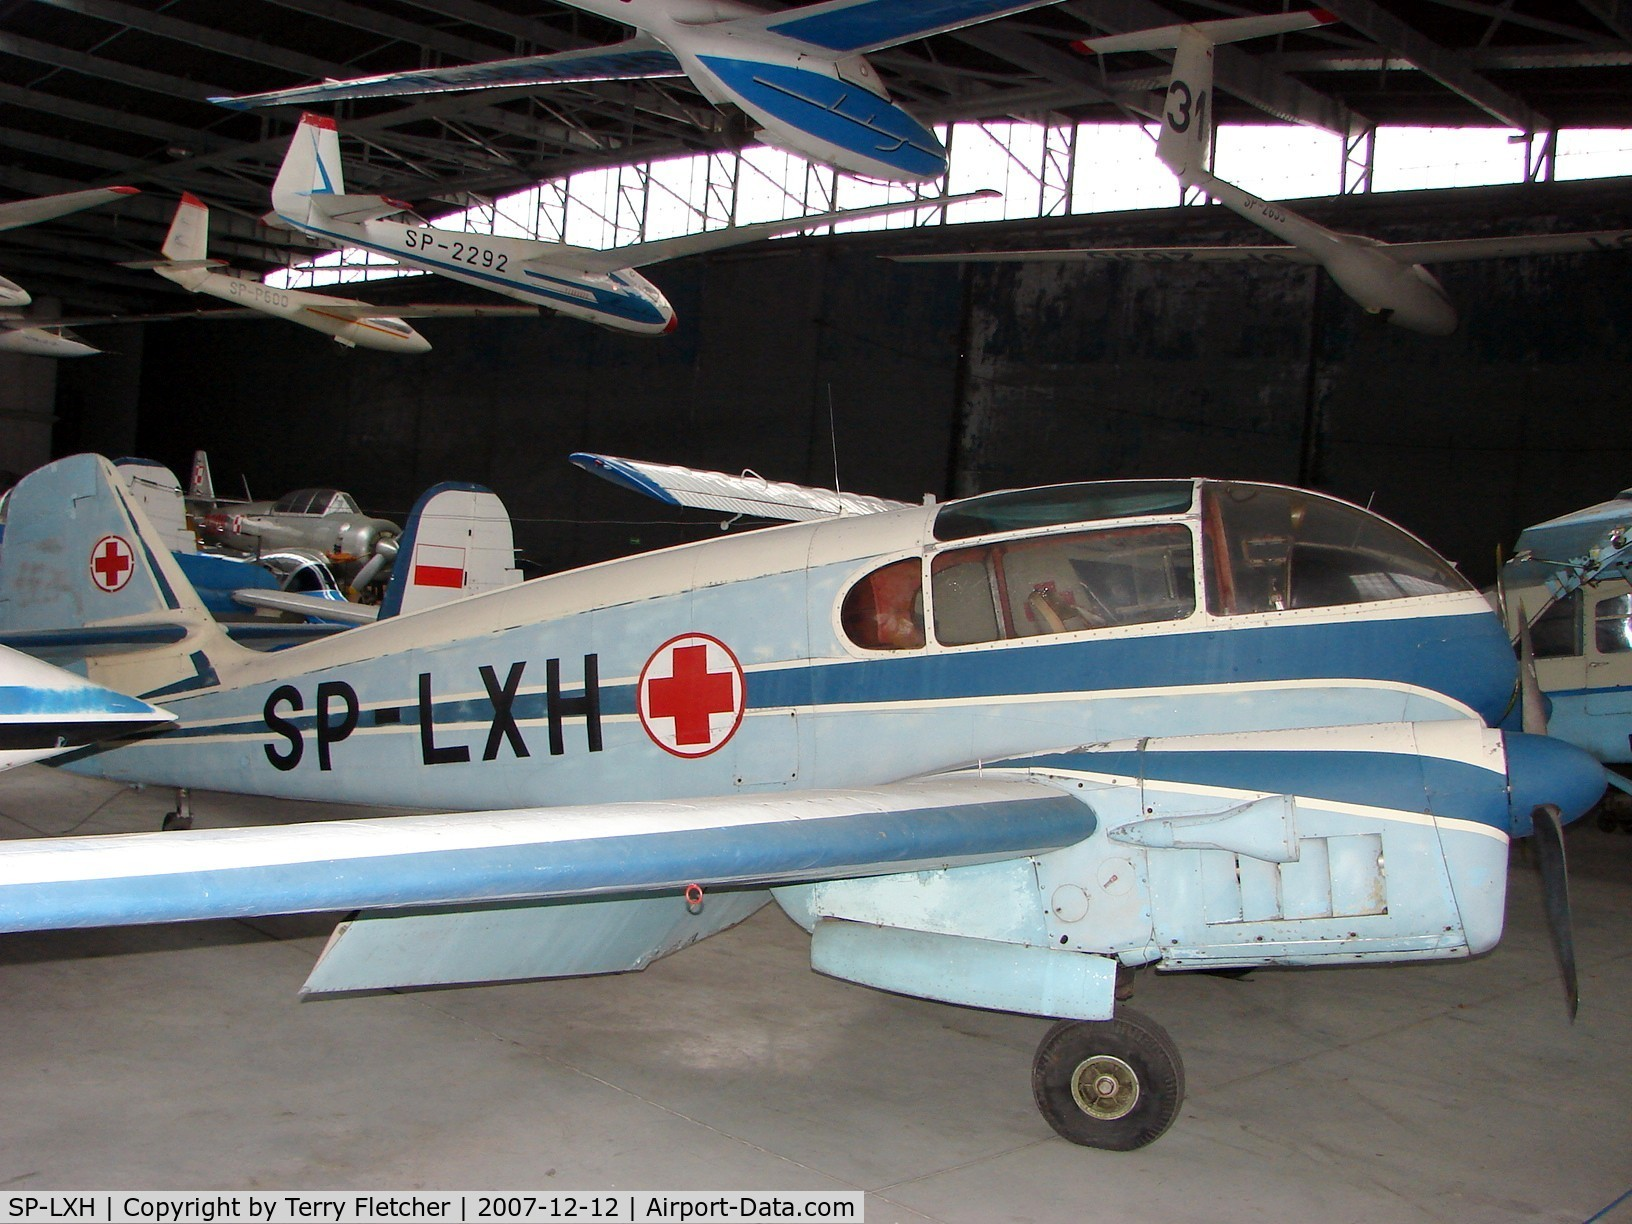 SP-LXH, Let Ae-145 Super Aero 145 C/N 172011, Aero 145 used as a Polish Air Ambulance and now preserved at the Poland Aviation Museum in Krakow